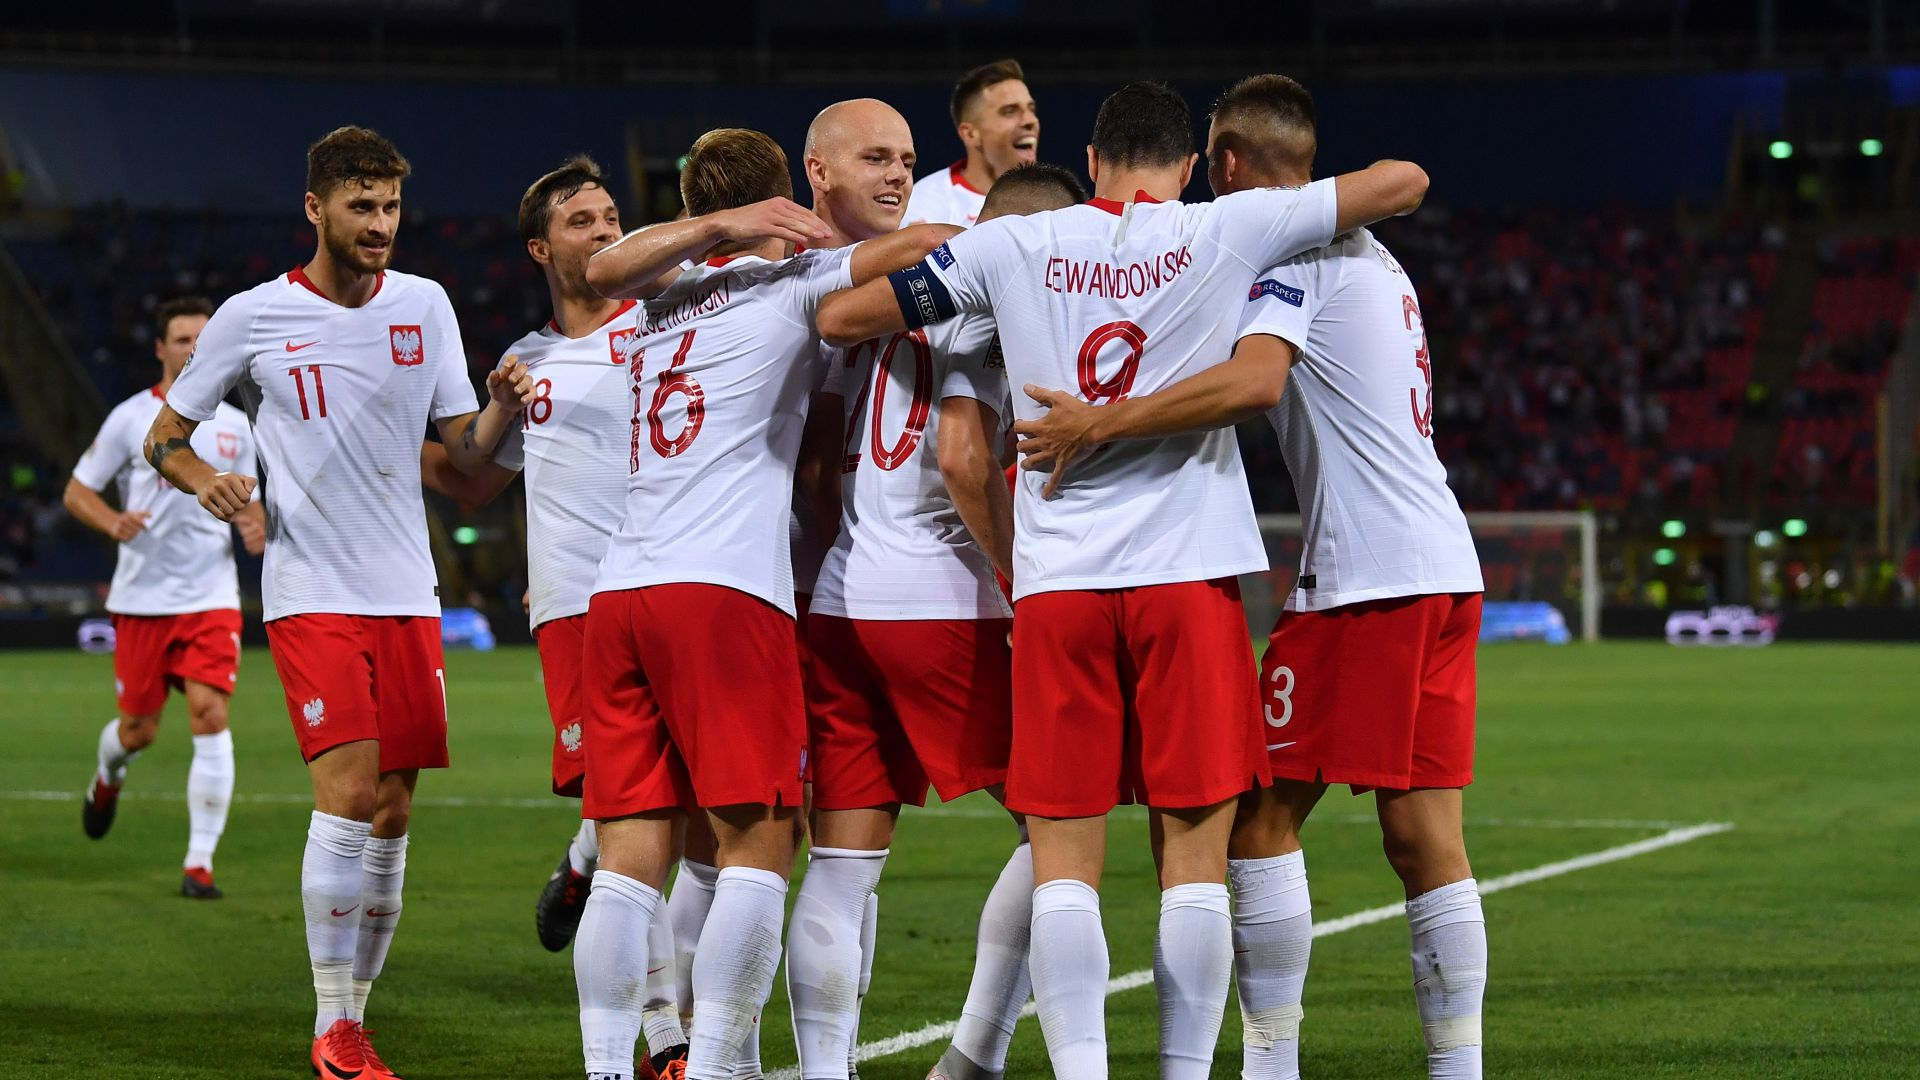 Poland players celebrating Italy Poland UEFA National League